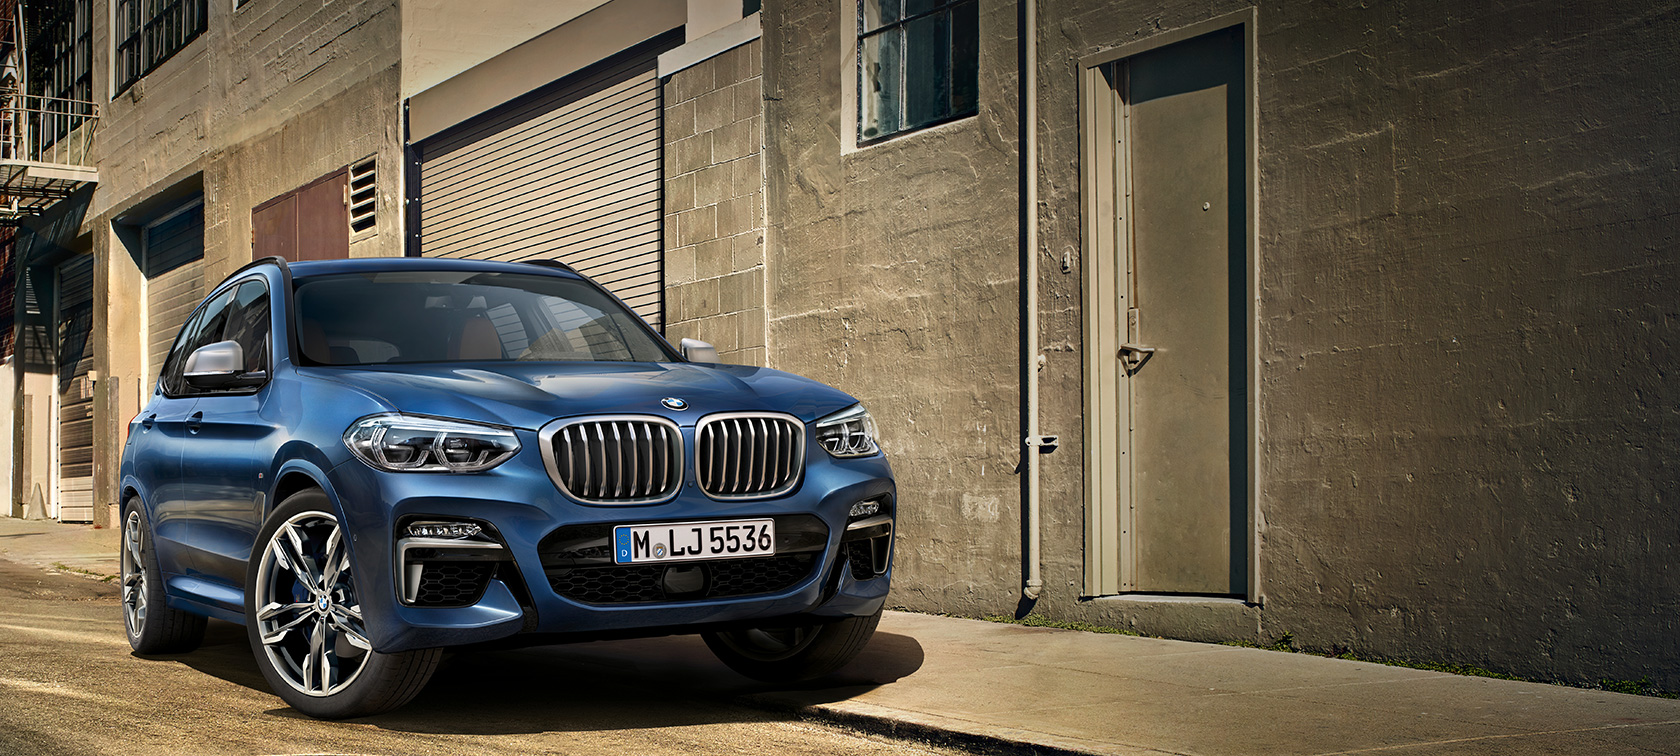 BMW X3 M40i, shot in front of house wall